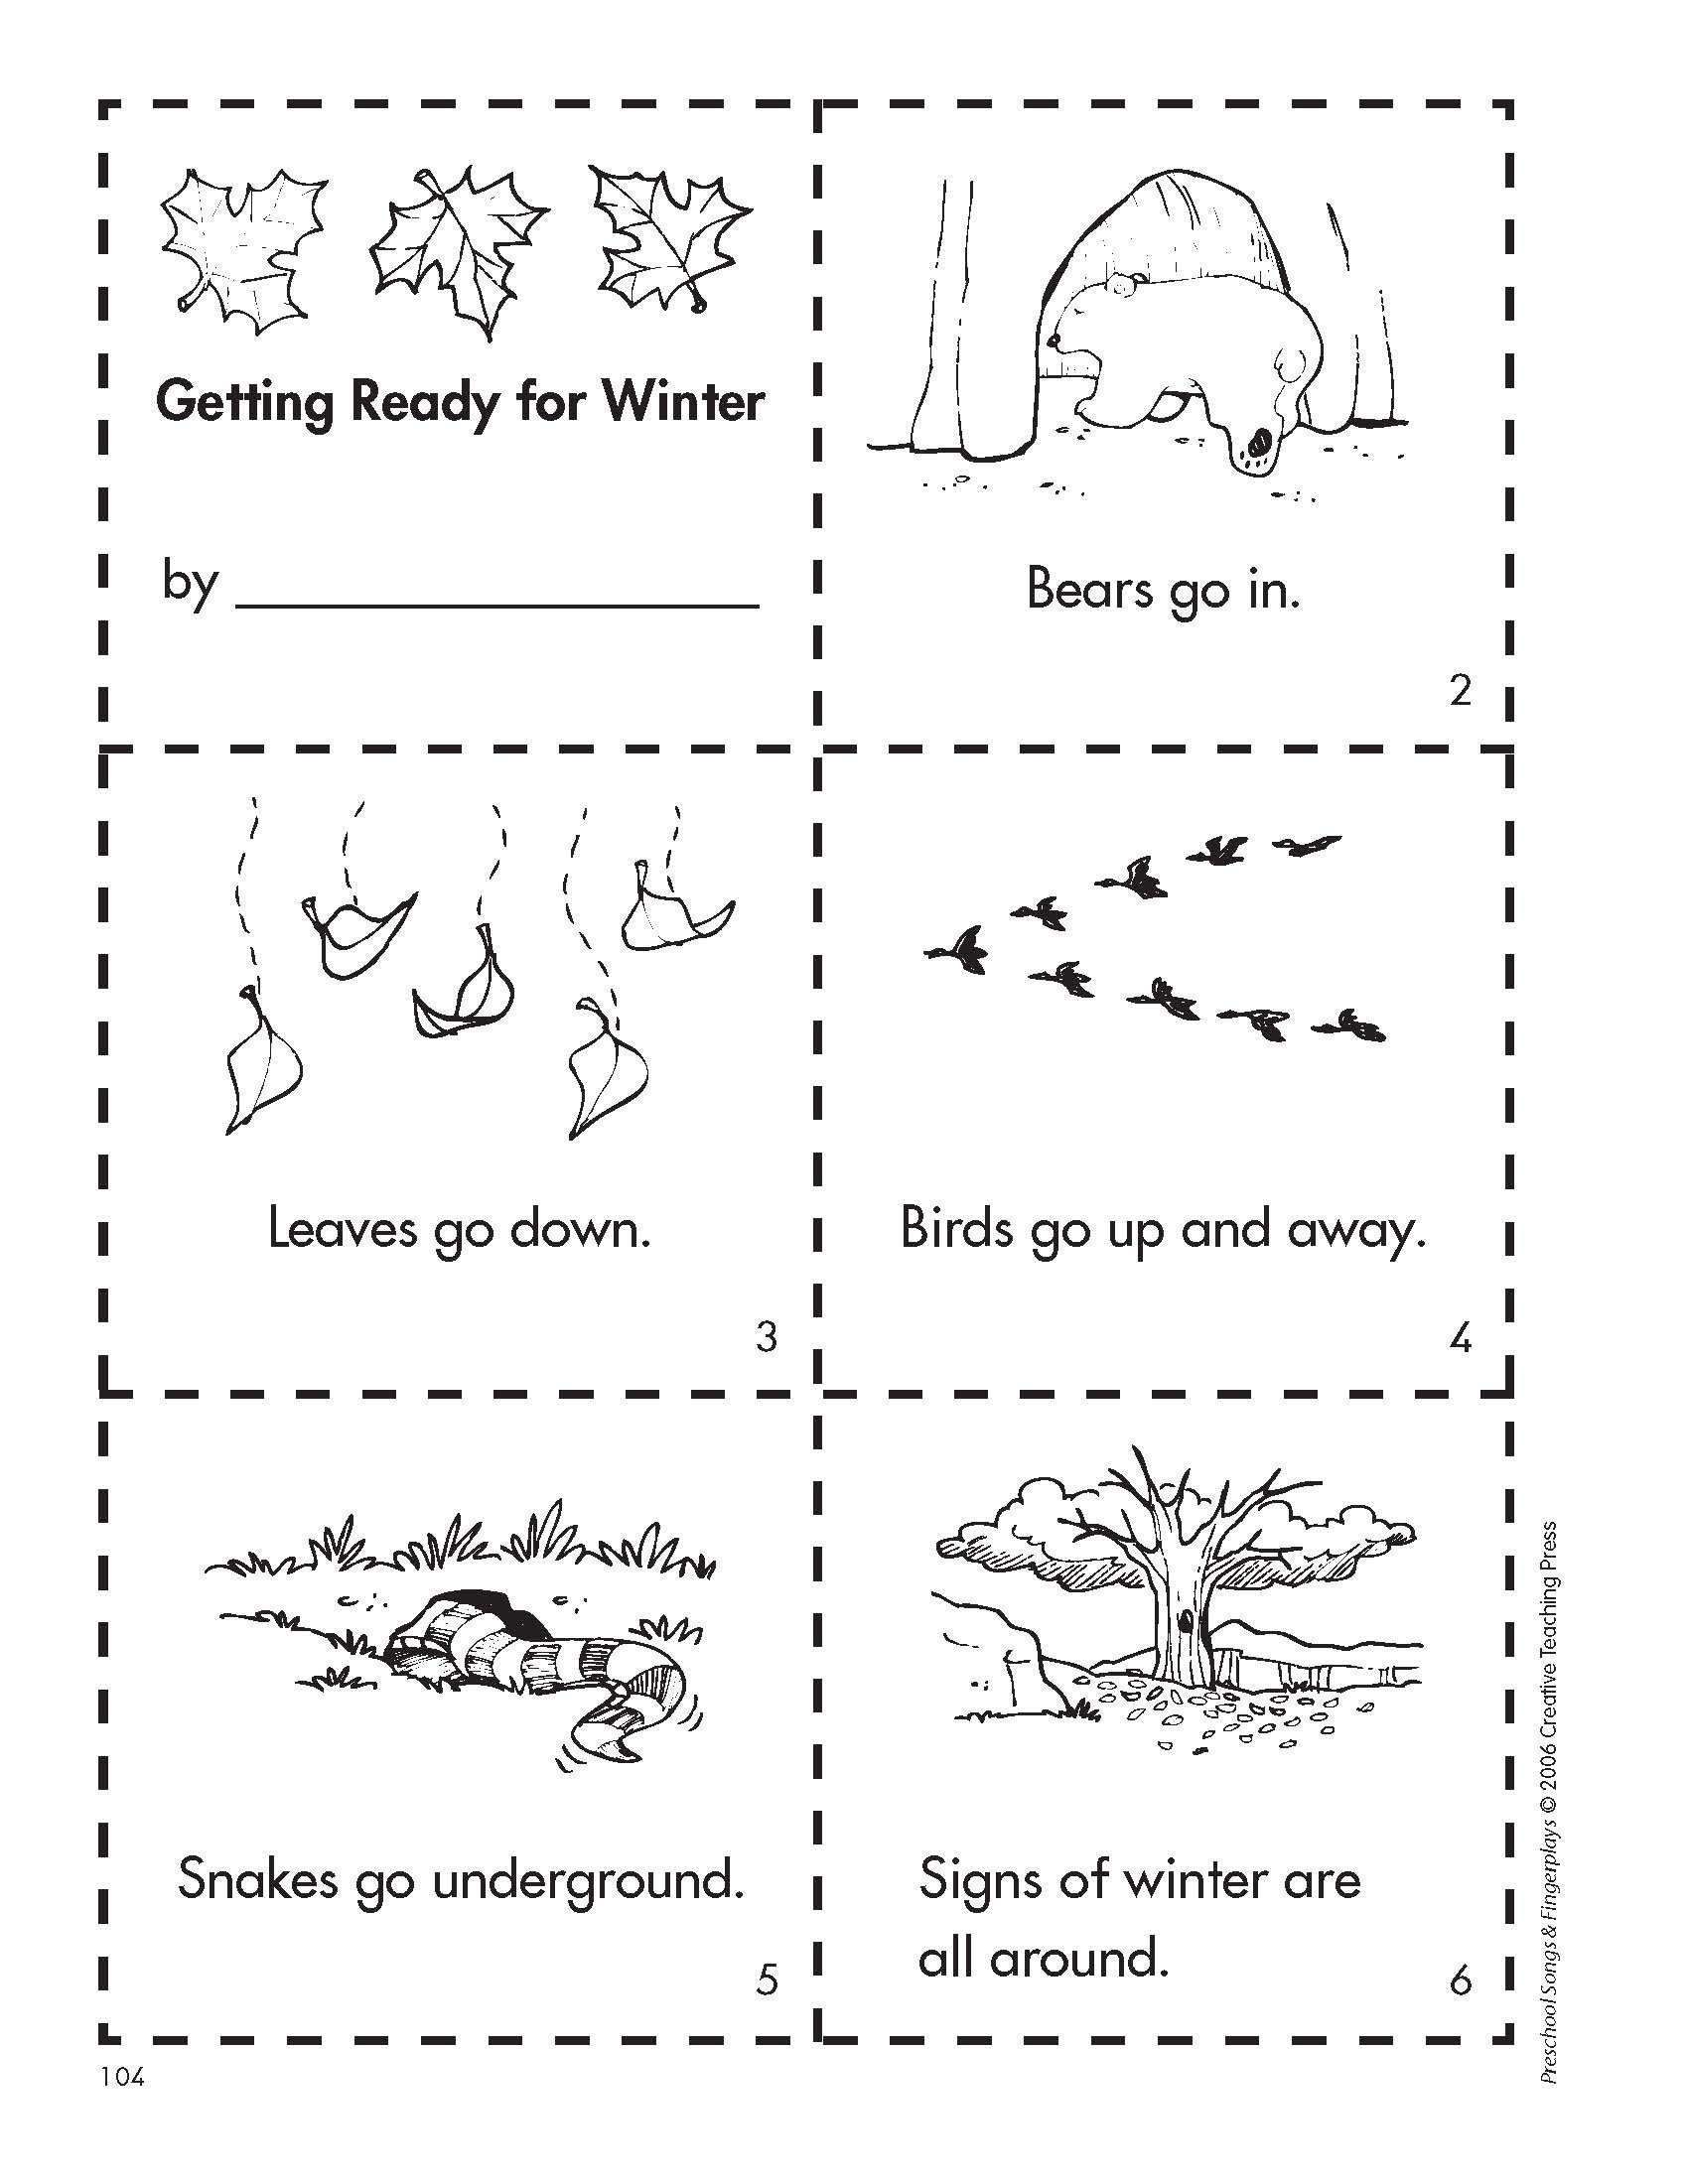 Hibernation Worksheet for Preschool Get Ready for Winter with This Free Minibook Reproducible